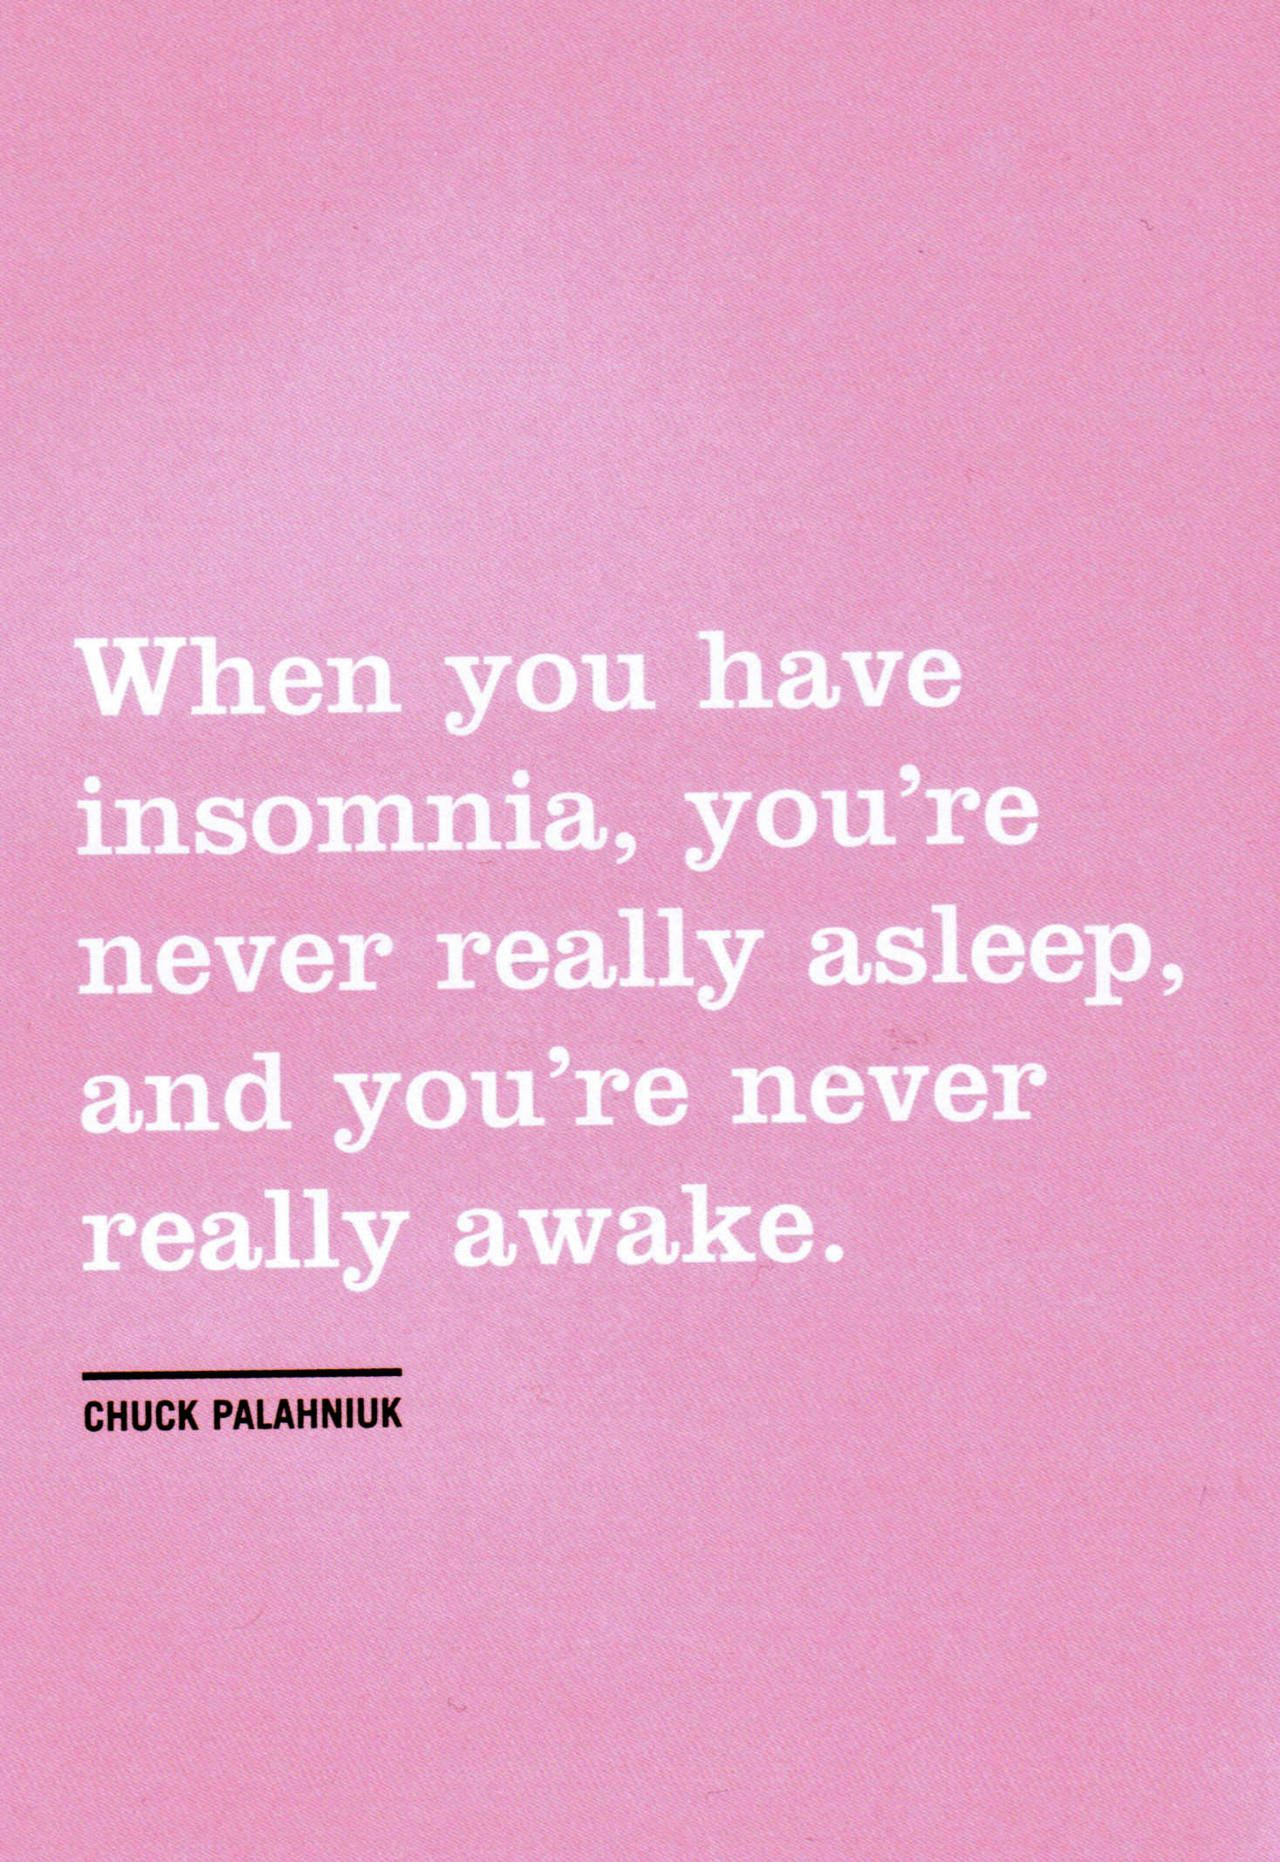 """When you have insomnia, you're never really asleep, and you're never really awake."" Quote from Fight Club"